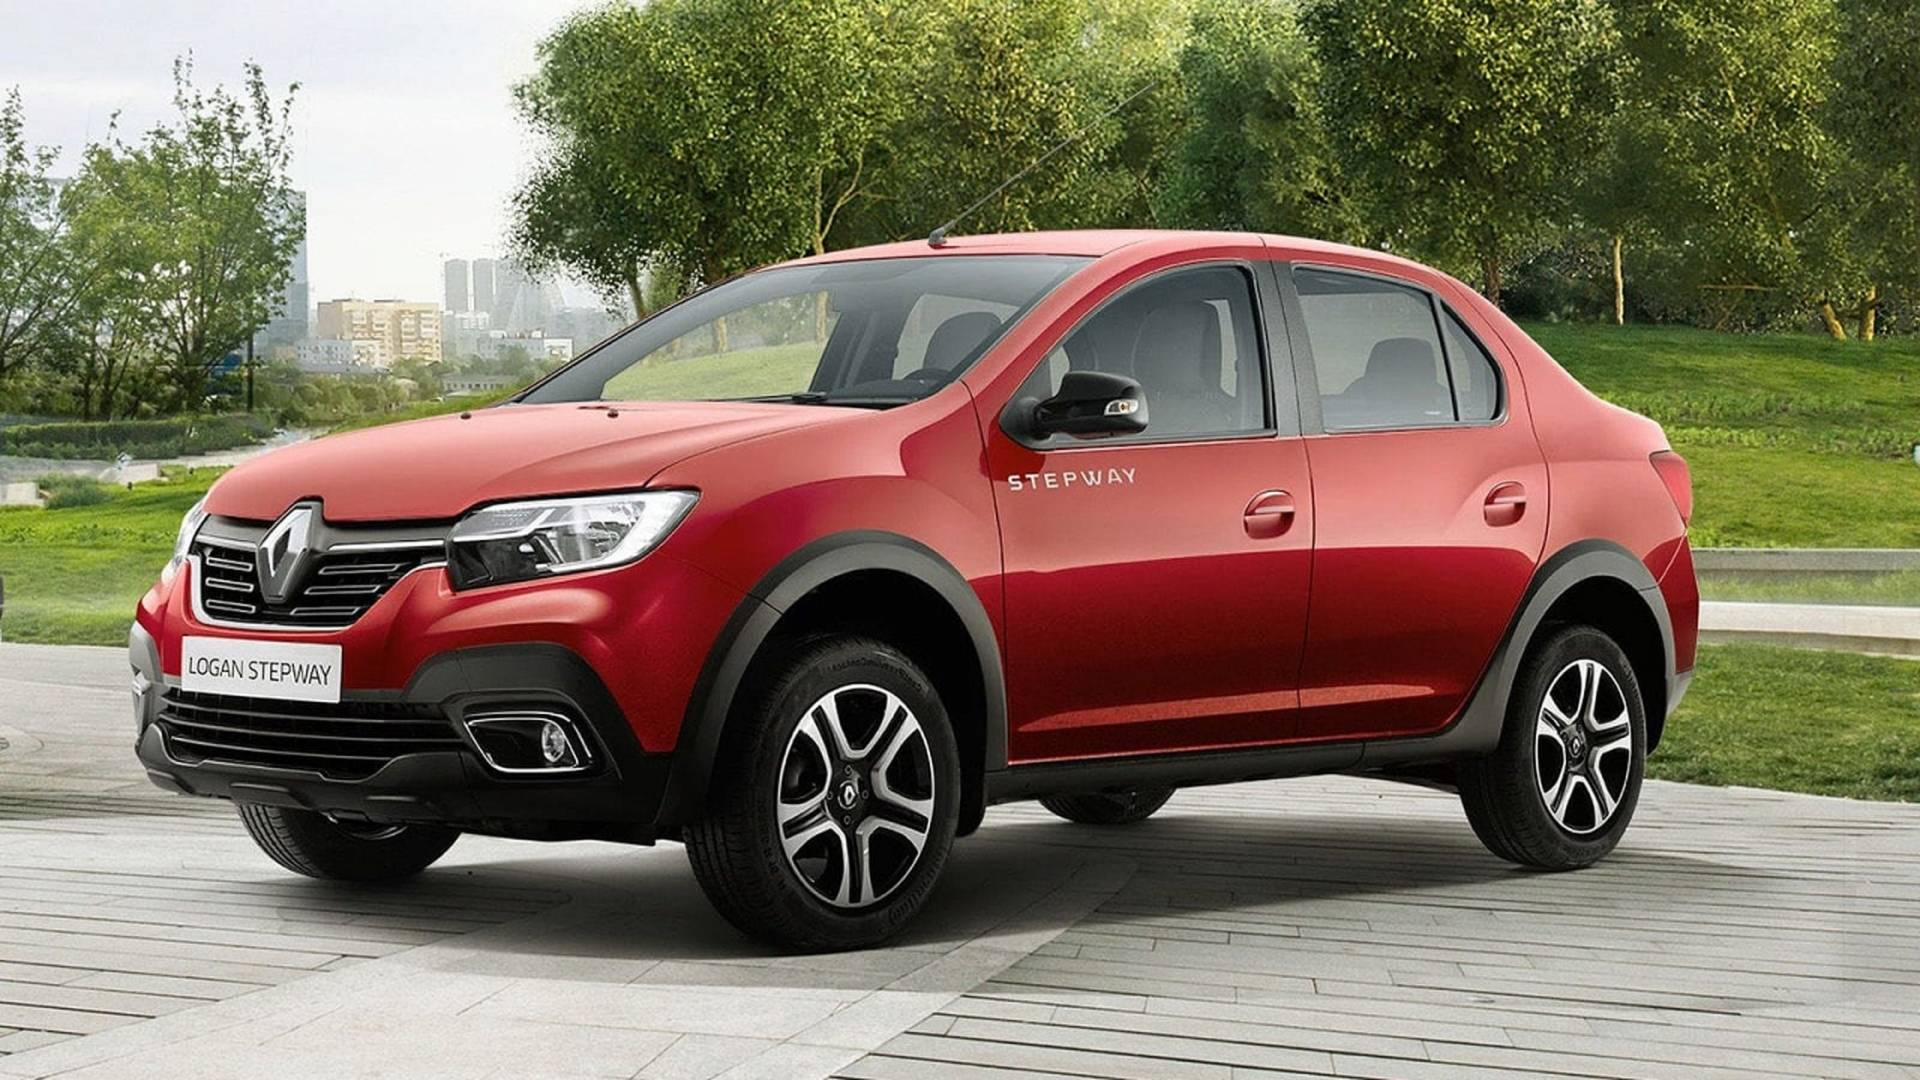 renault logan stepway is real and rugged autoevolution. Black Bedroom Furniture Sets. Home Design Ideas